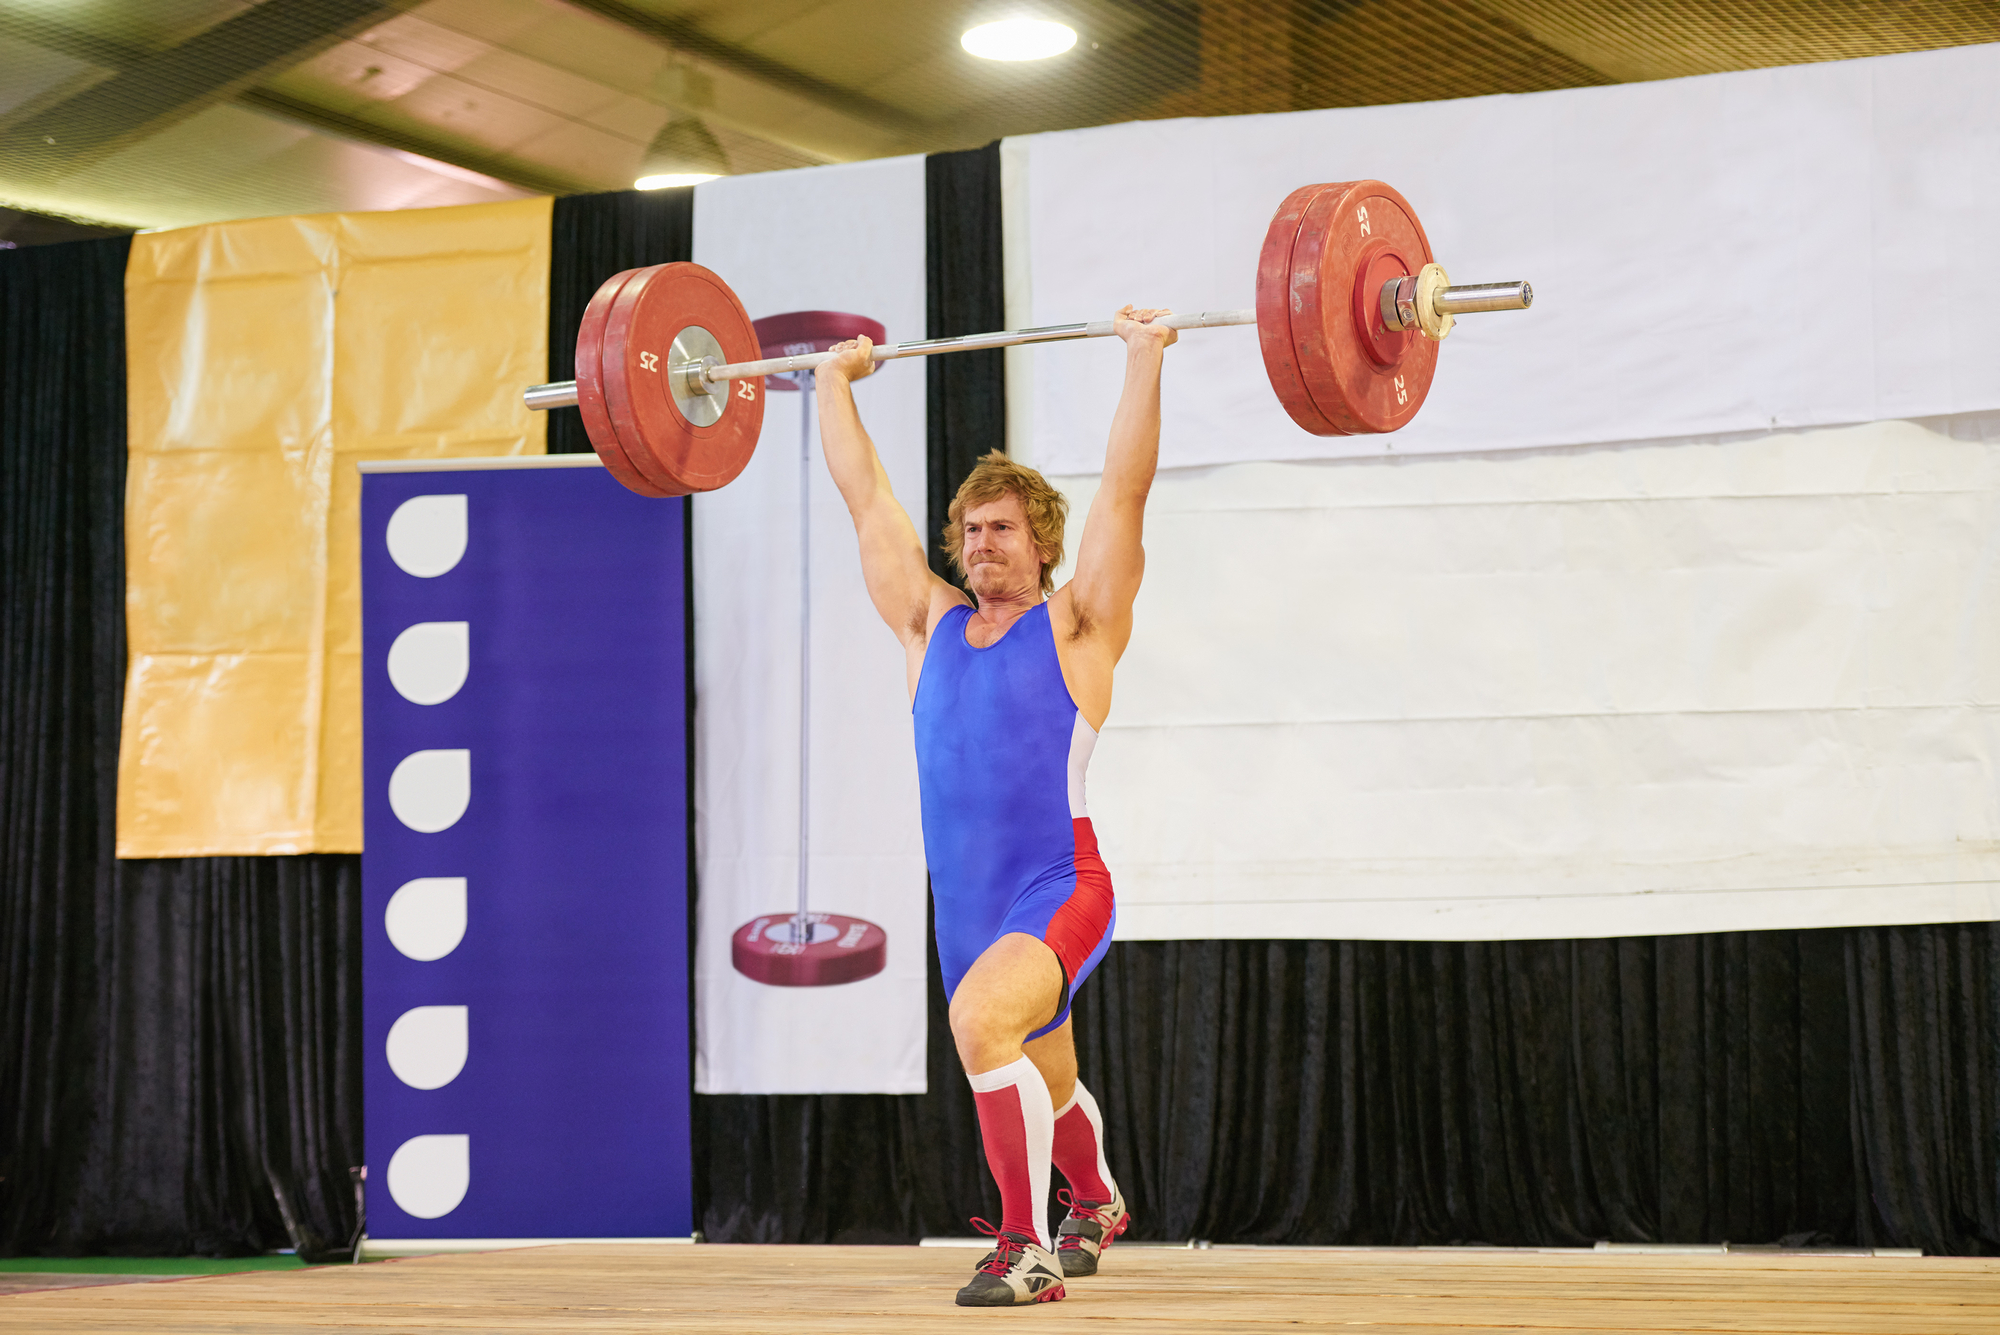 The Clean and Jerk